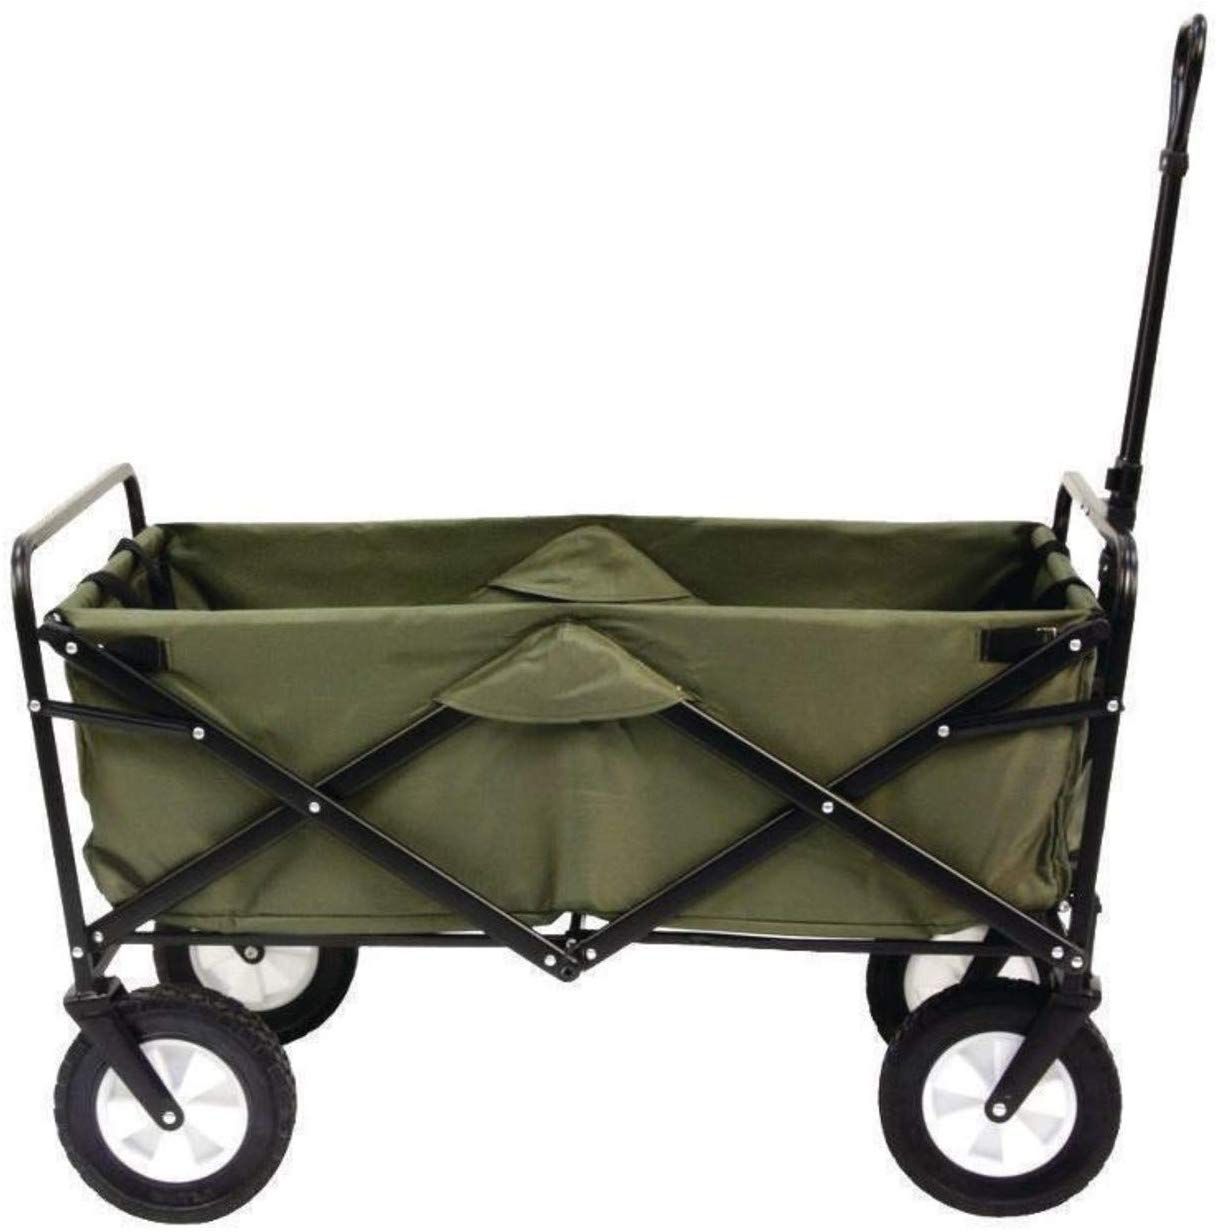 Patio Lawn Garden Carts Camo